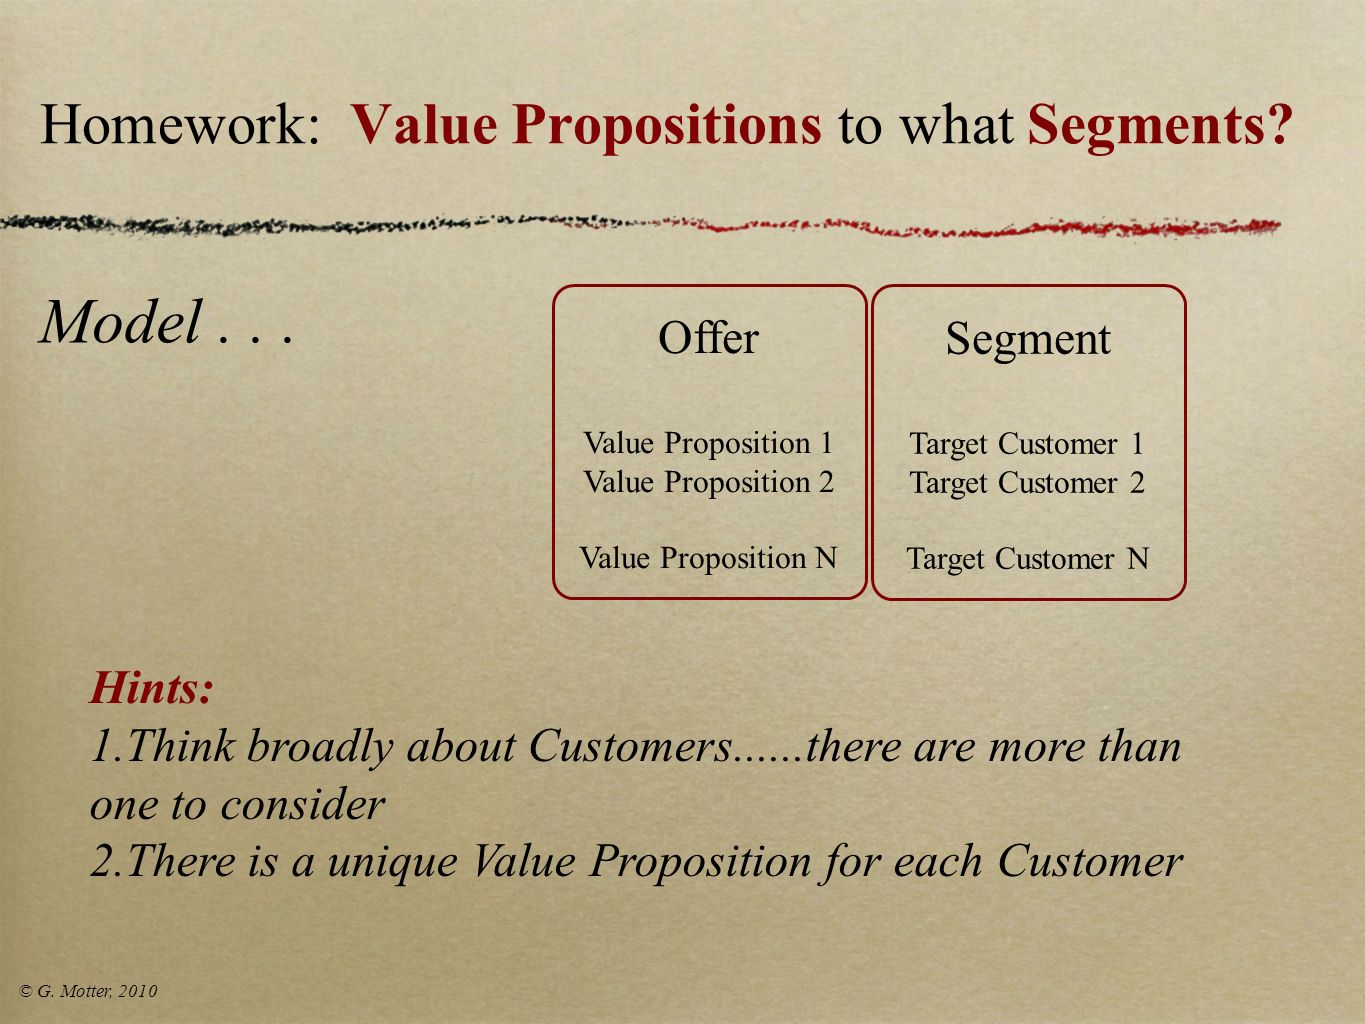 Homework: Value Propositions to what Segments